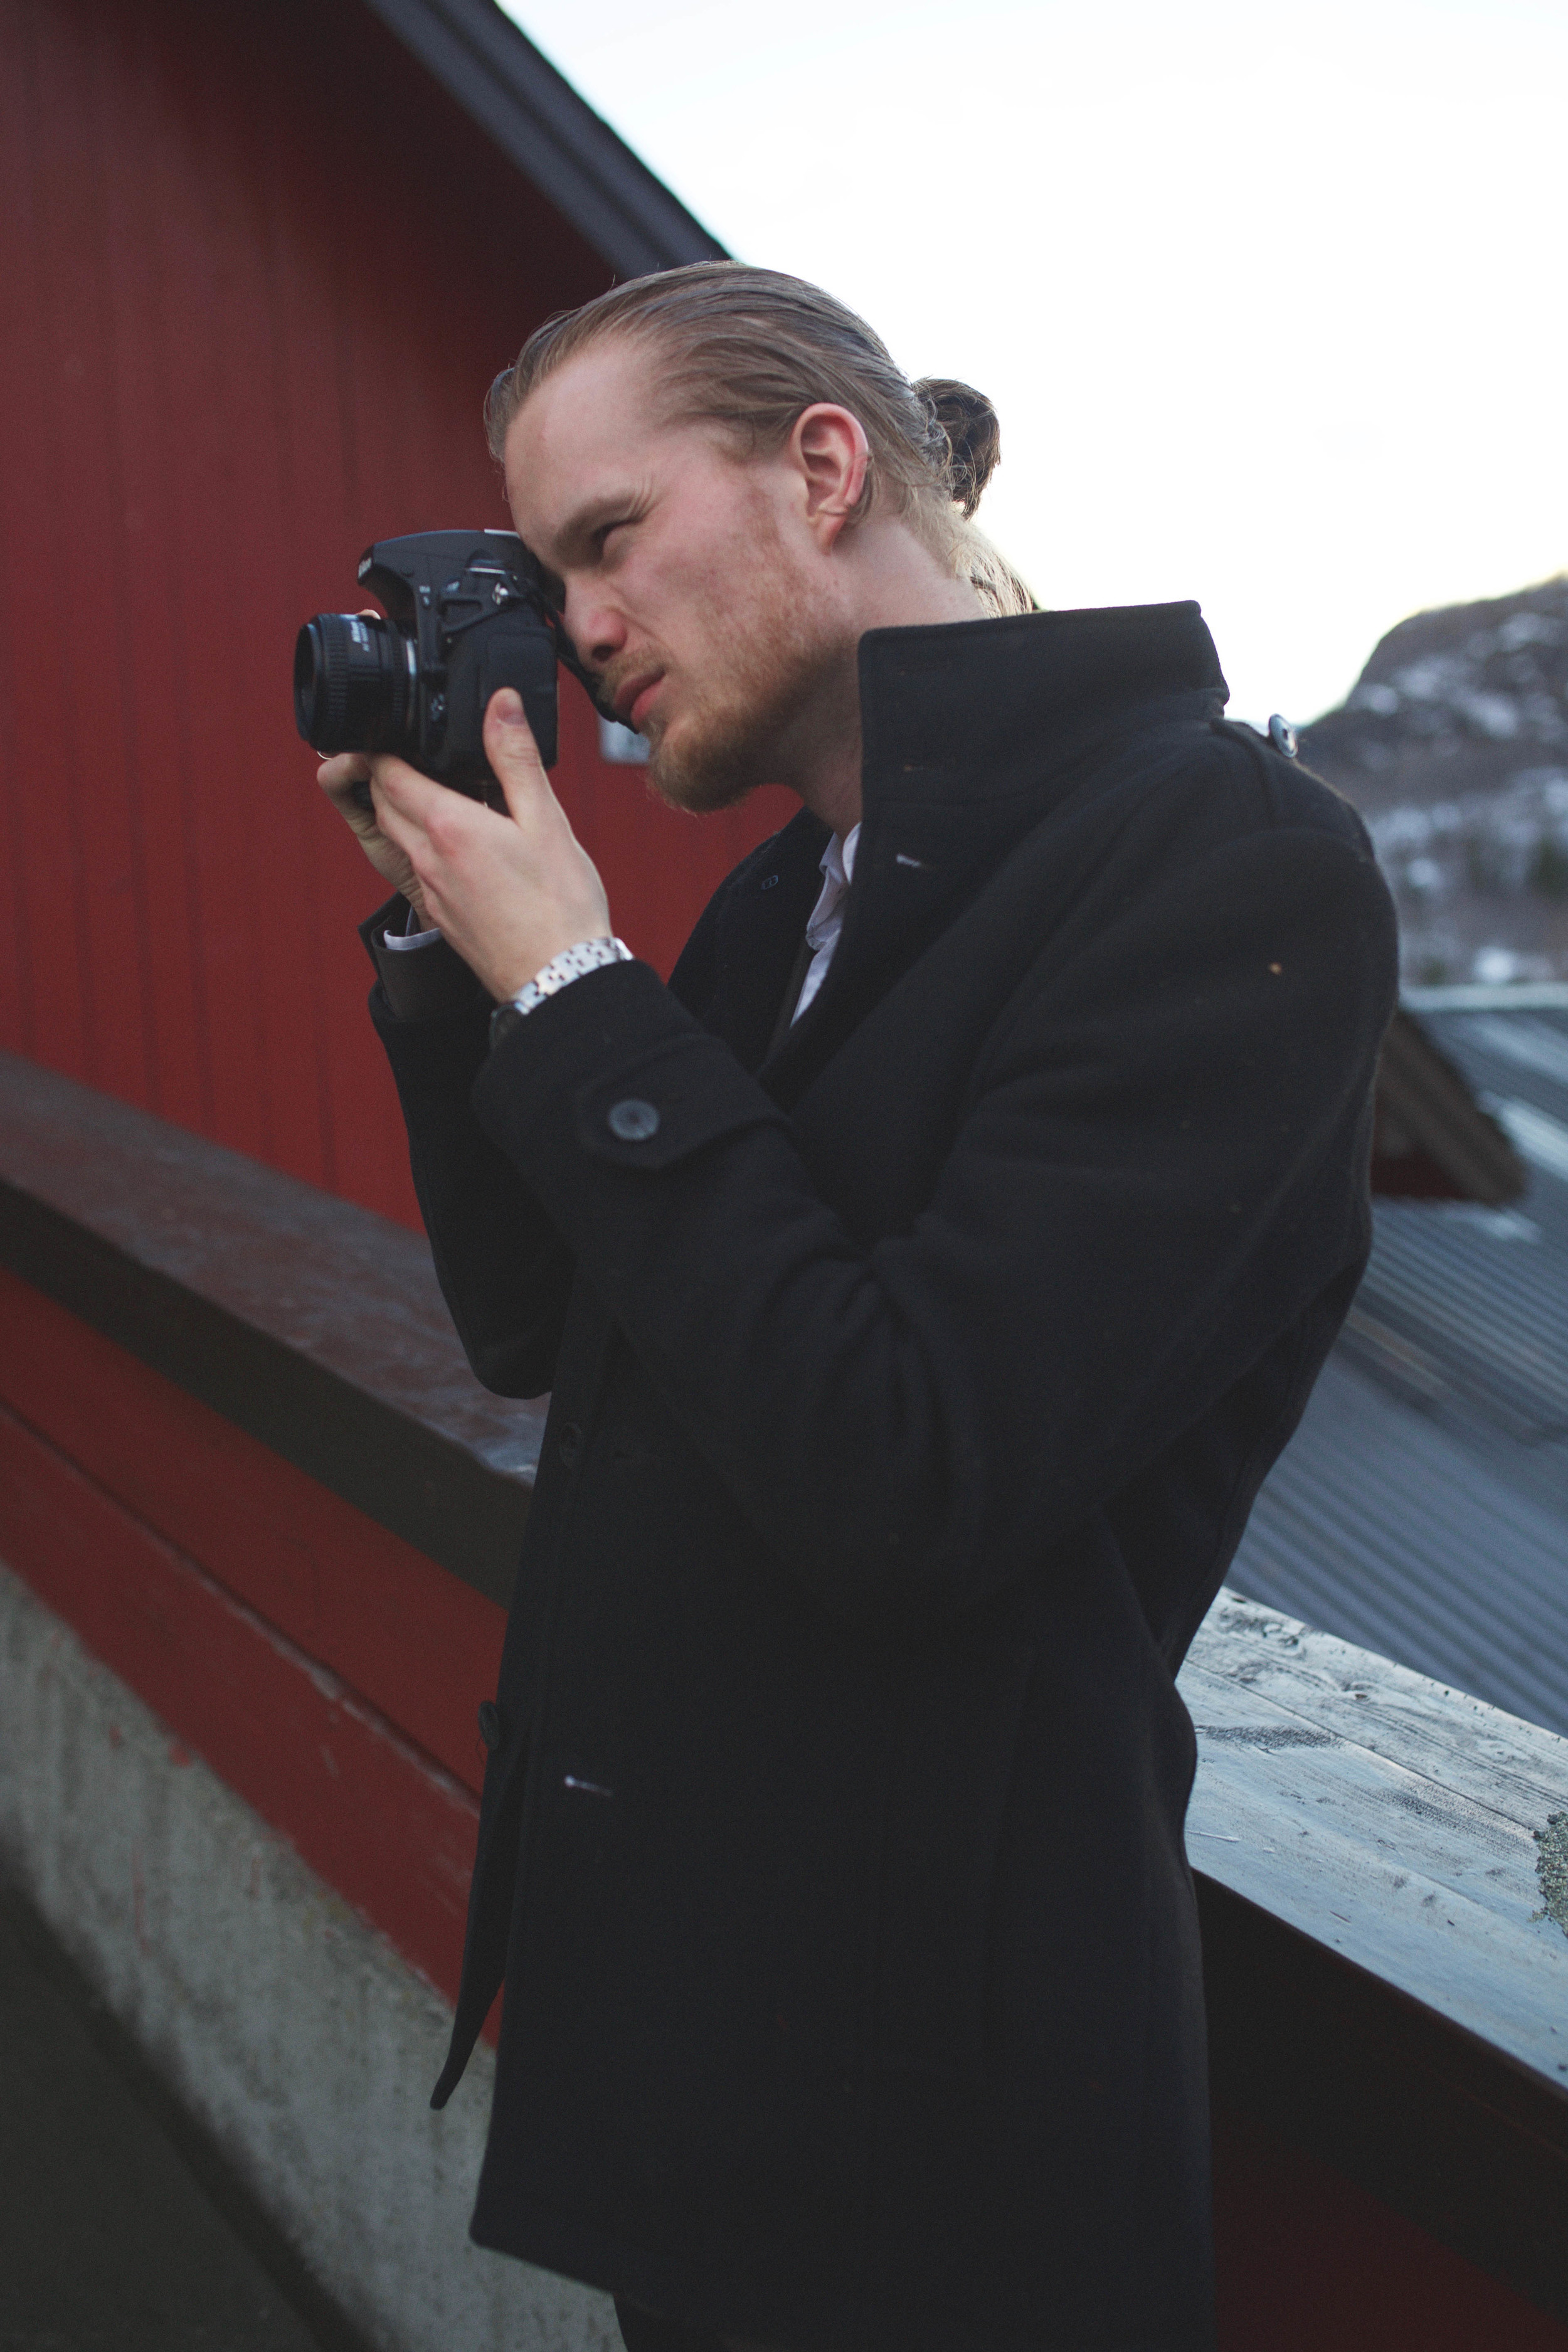 May I introduce you to Jon and his Nikon. ;)